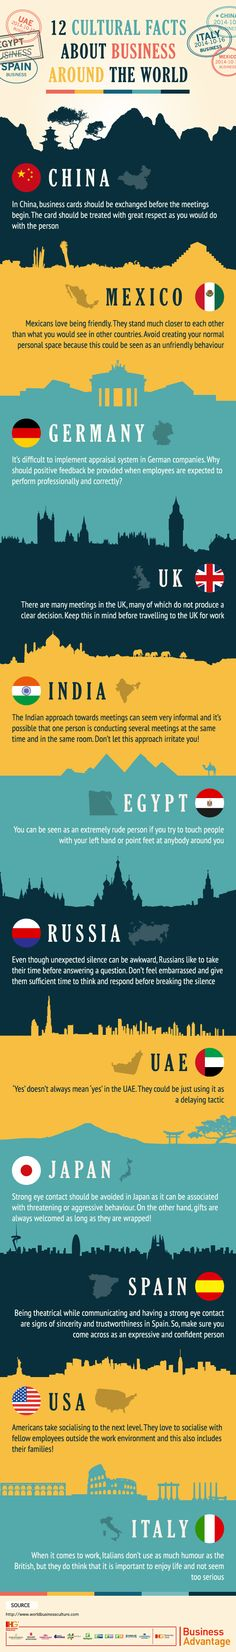 Business-Travel-Cultural-Facts-Infographic